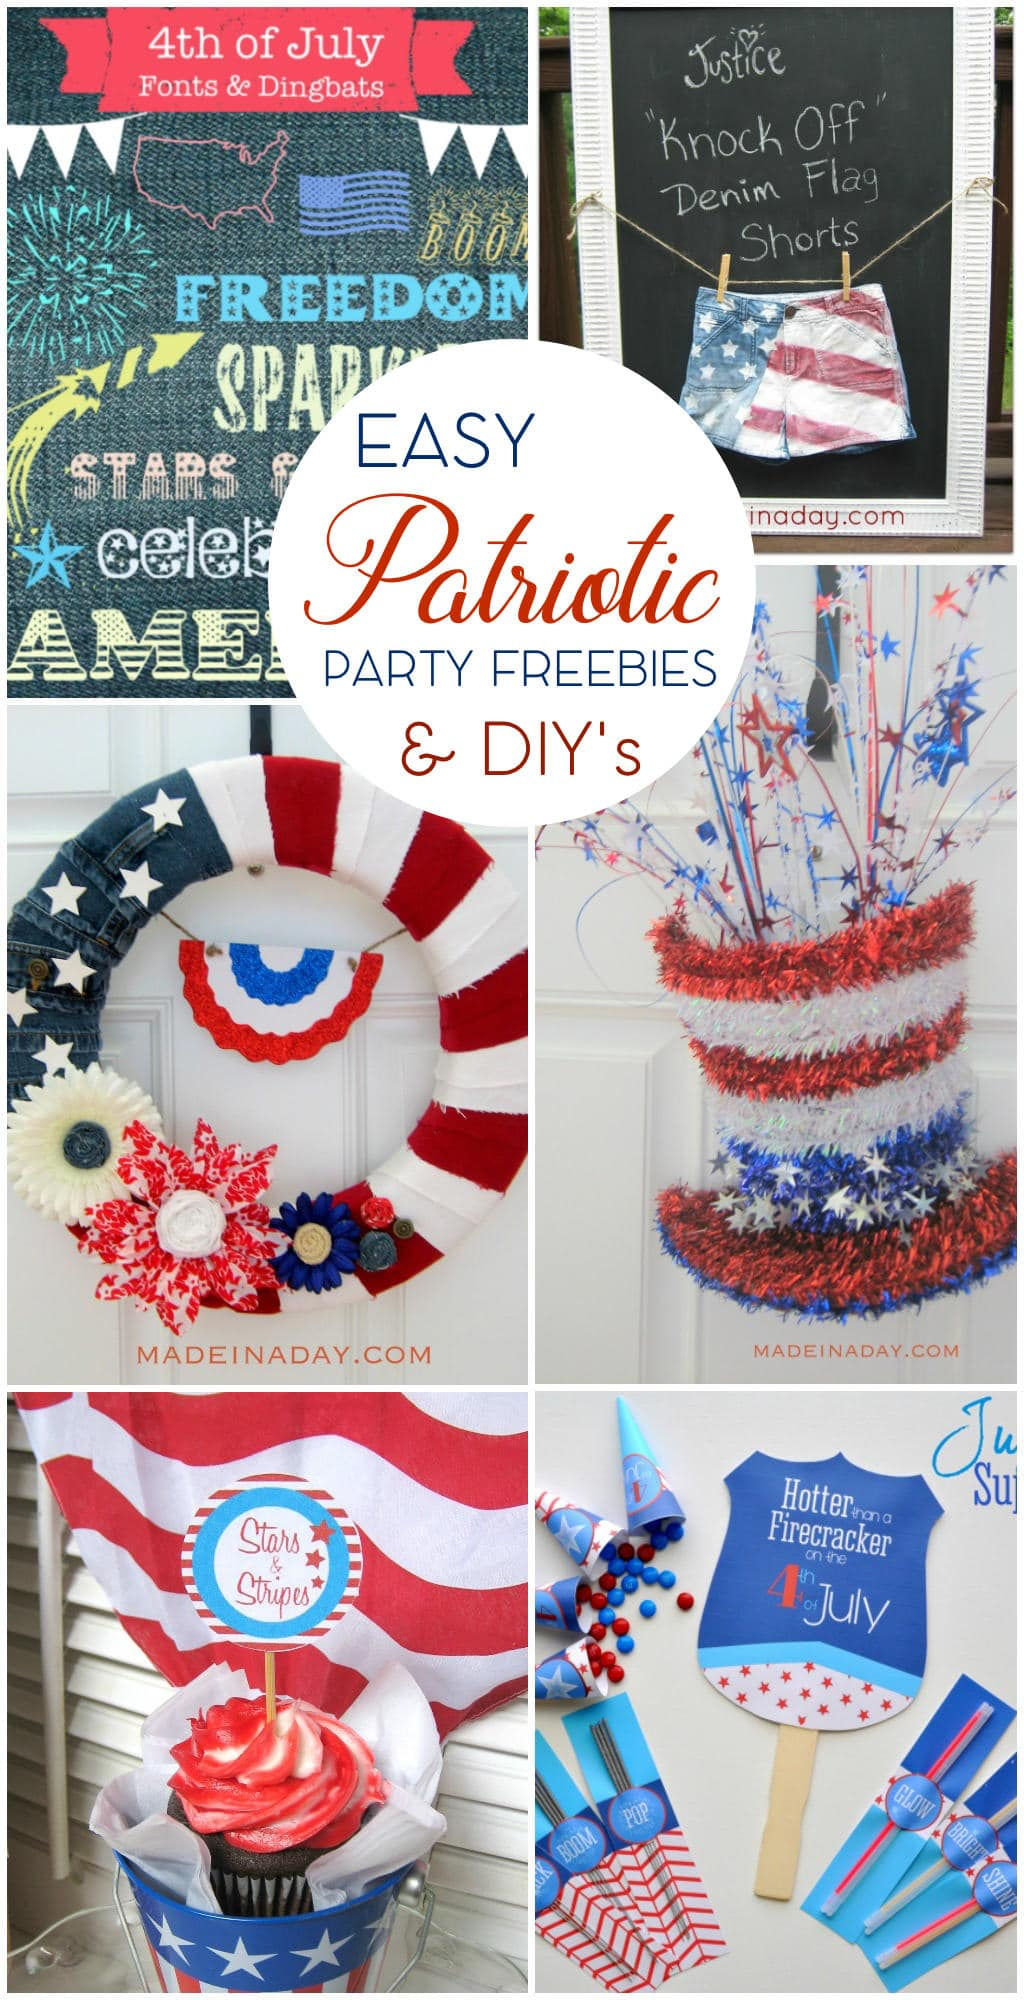 Easy Patriotic Crafts & Party Printables, Denim wreath, patriotic fonts, Flag Shorts tutorial, Sparle Hat Door Hanger, 4th of July Party supplies: Hand fan printable, cupcake toppers, sparkler holders, glow stick holders, candy cone holders and more on madeinaday.com